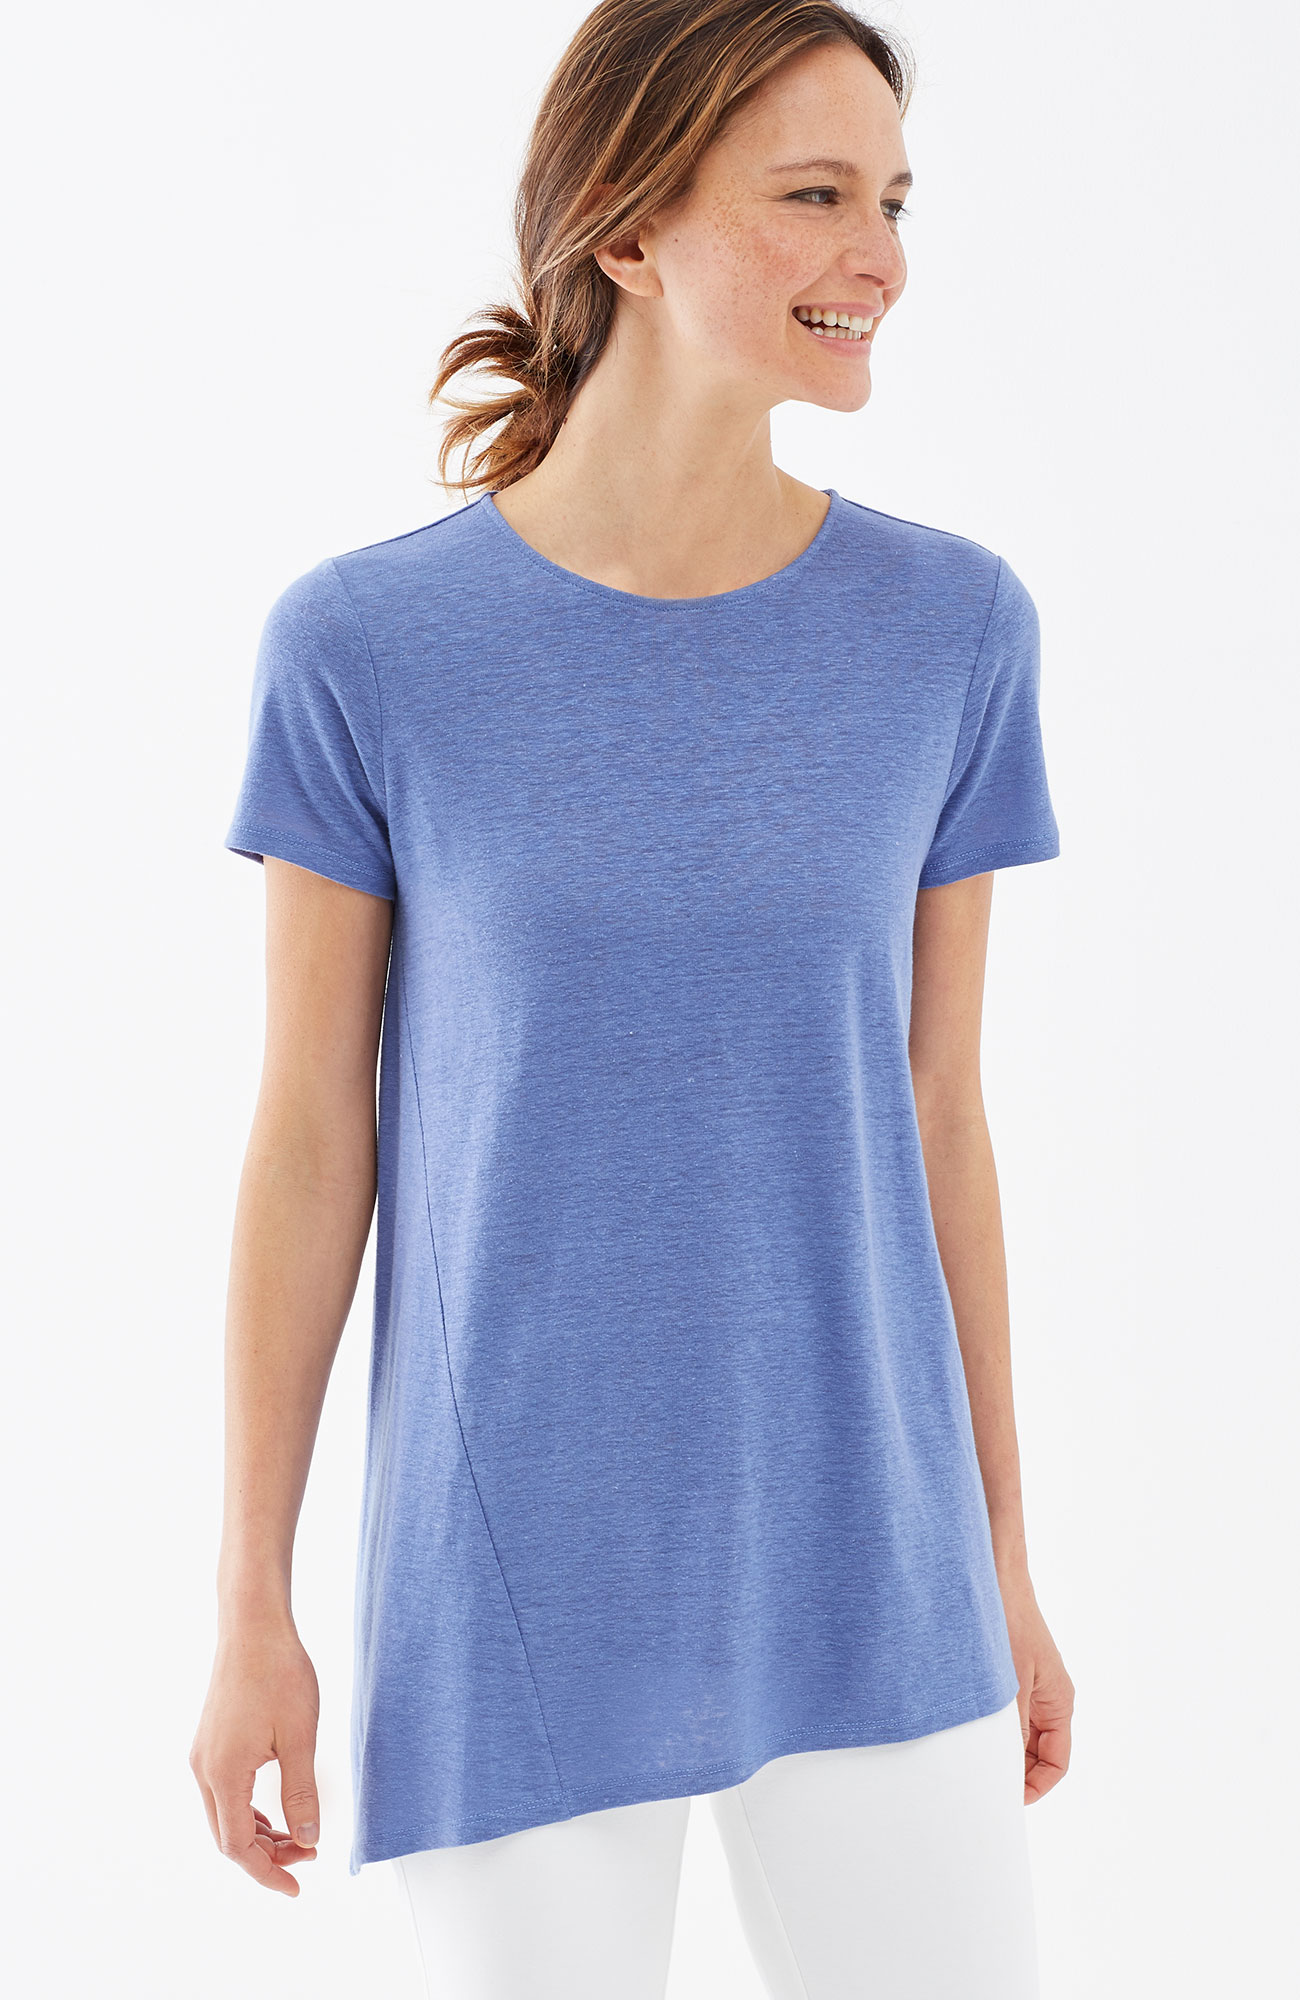 Pure Jill seamed asymmetric tee